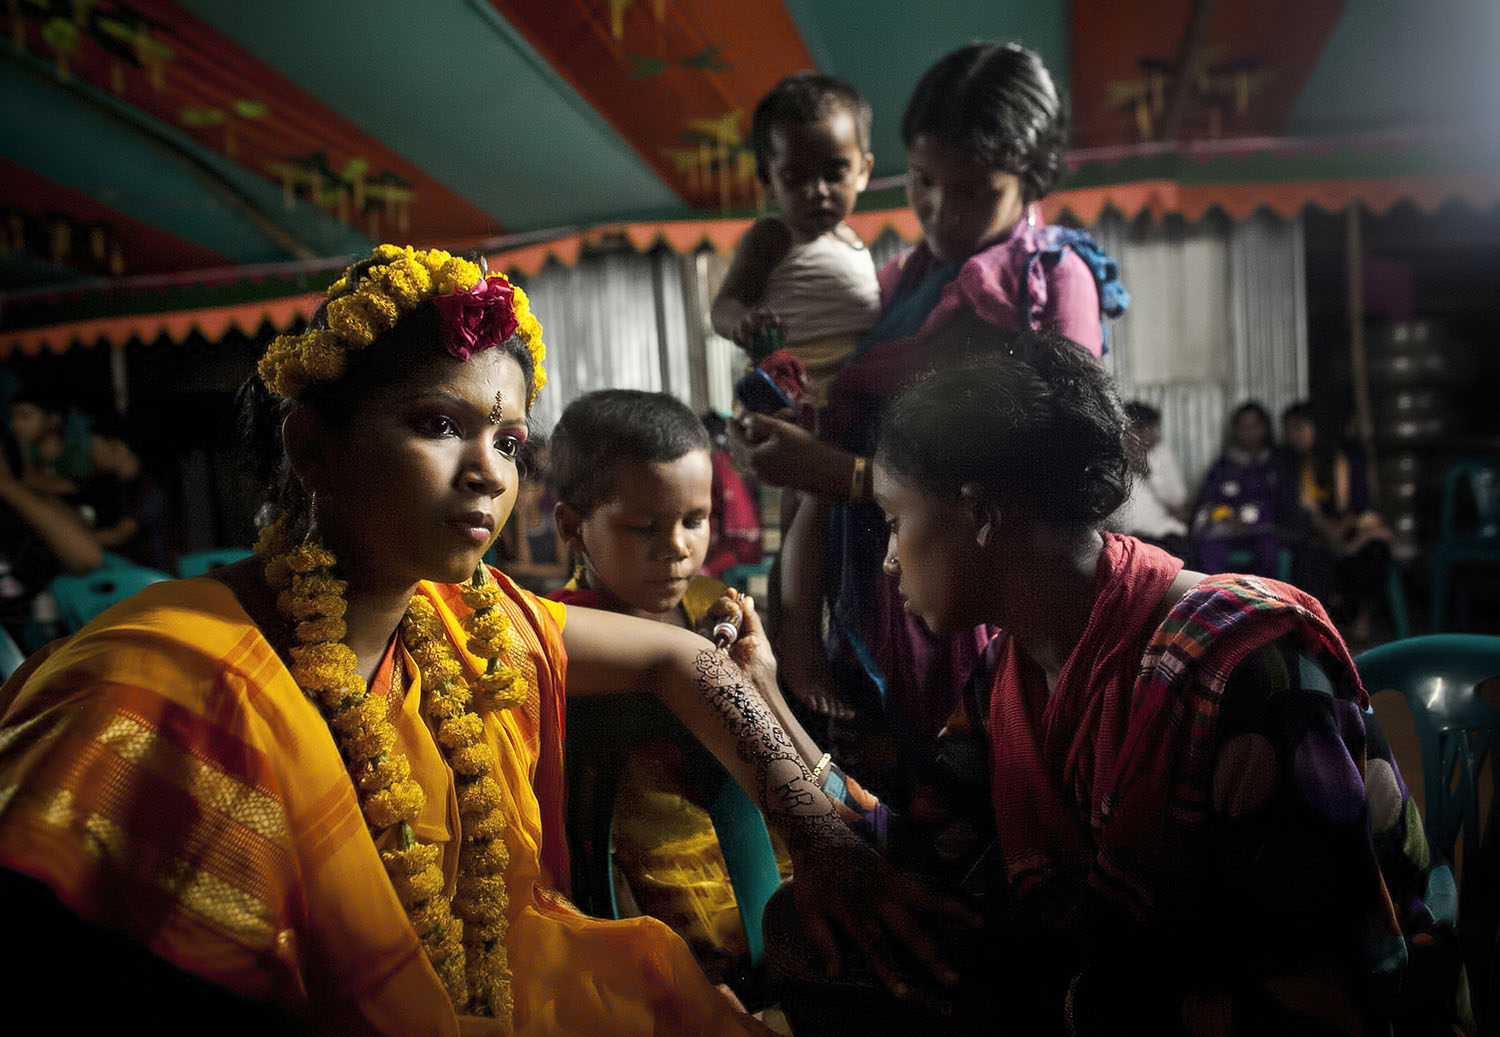 13 year old Runa Akhter is dressed for her holud ceremony the night before her wedding to a 29 year old man